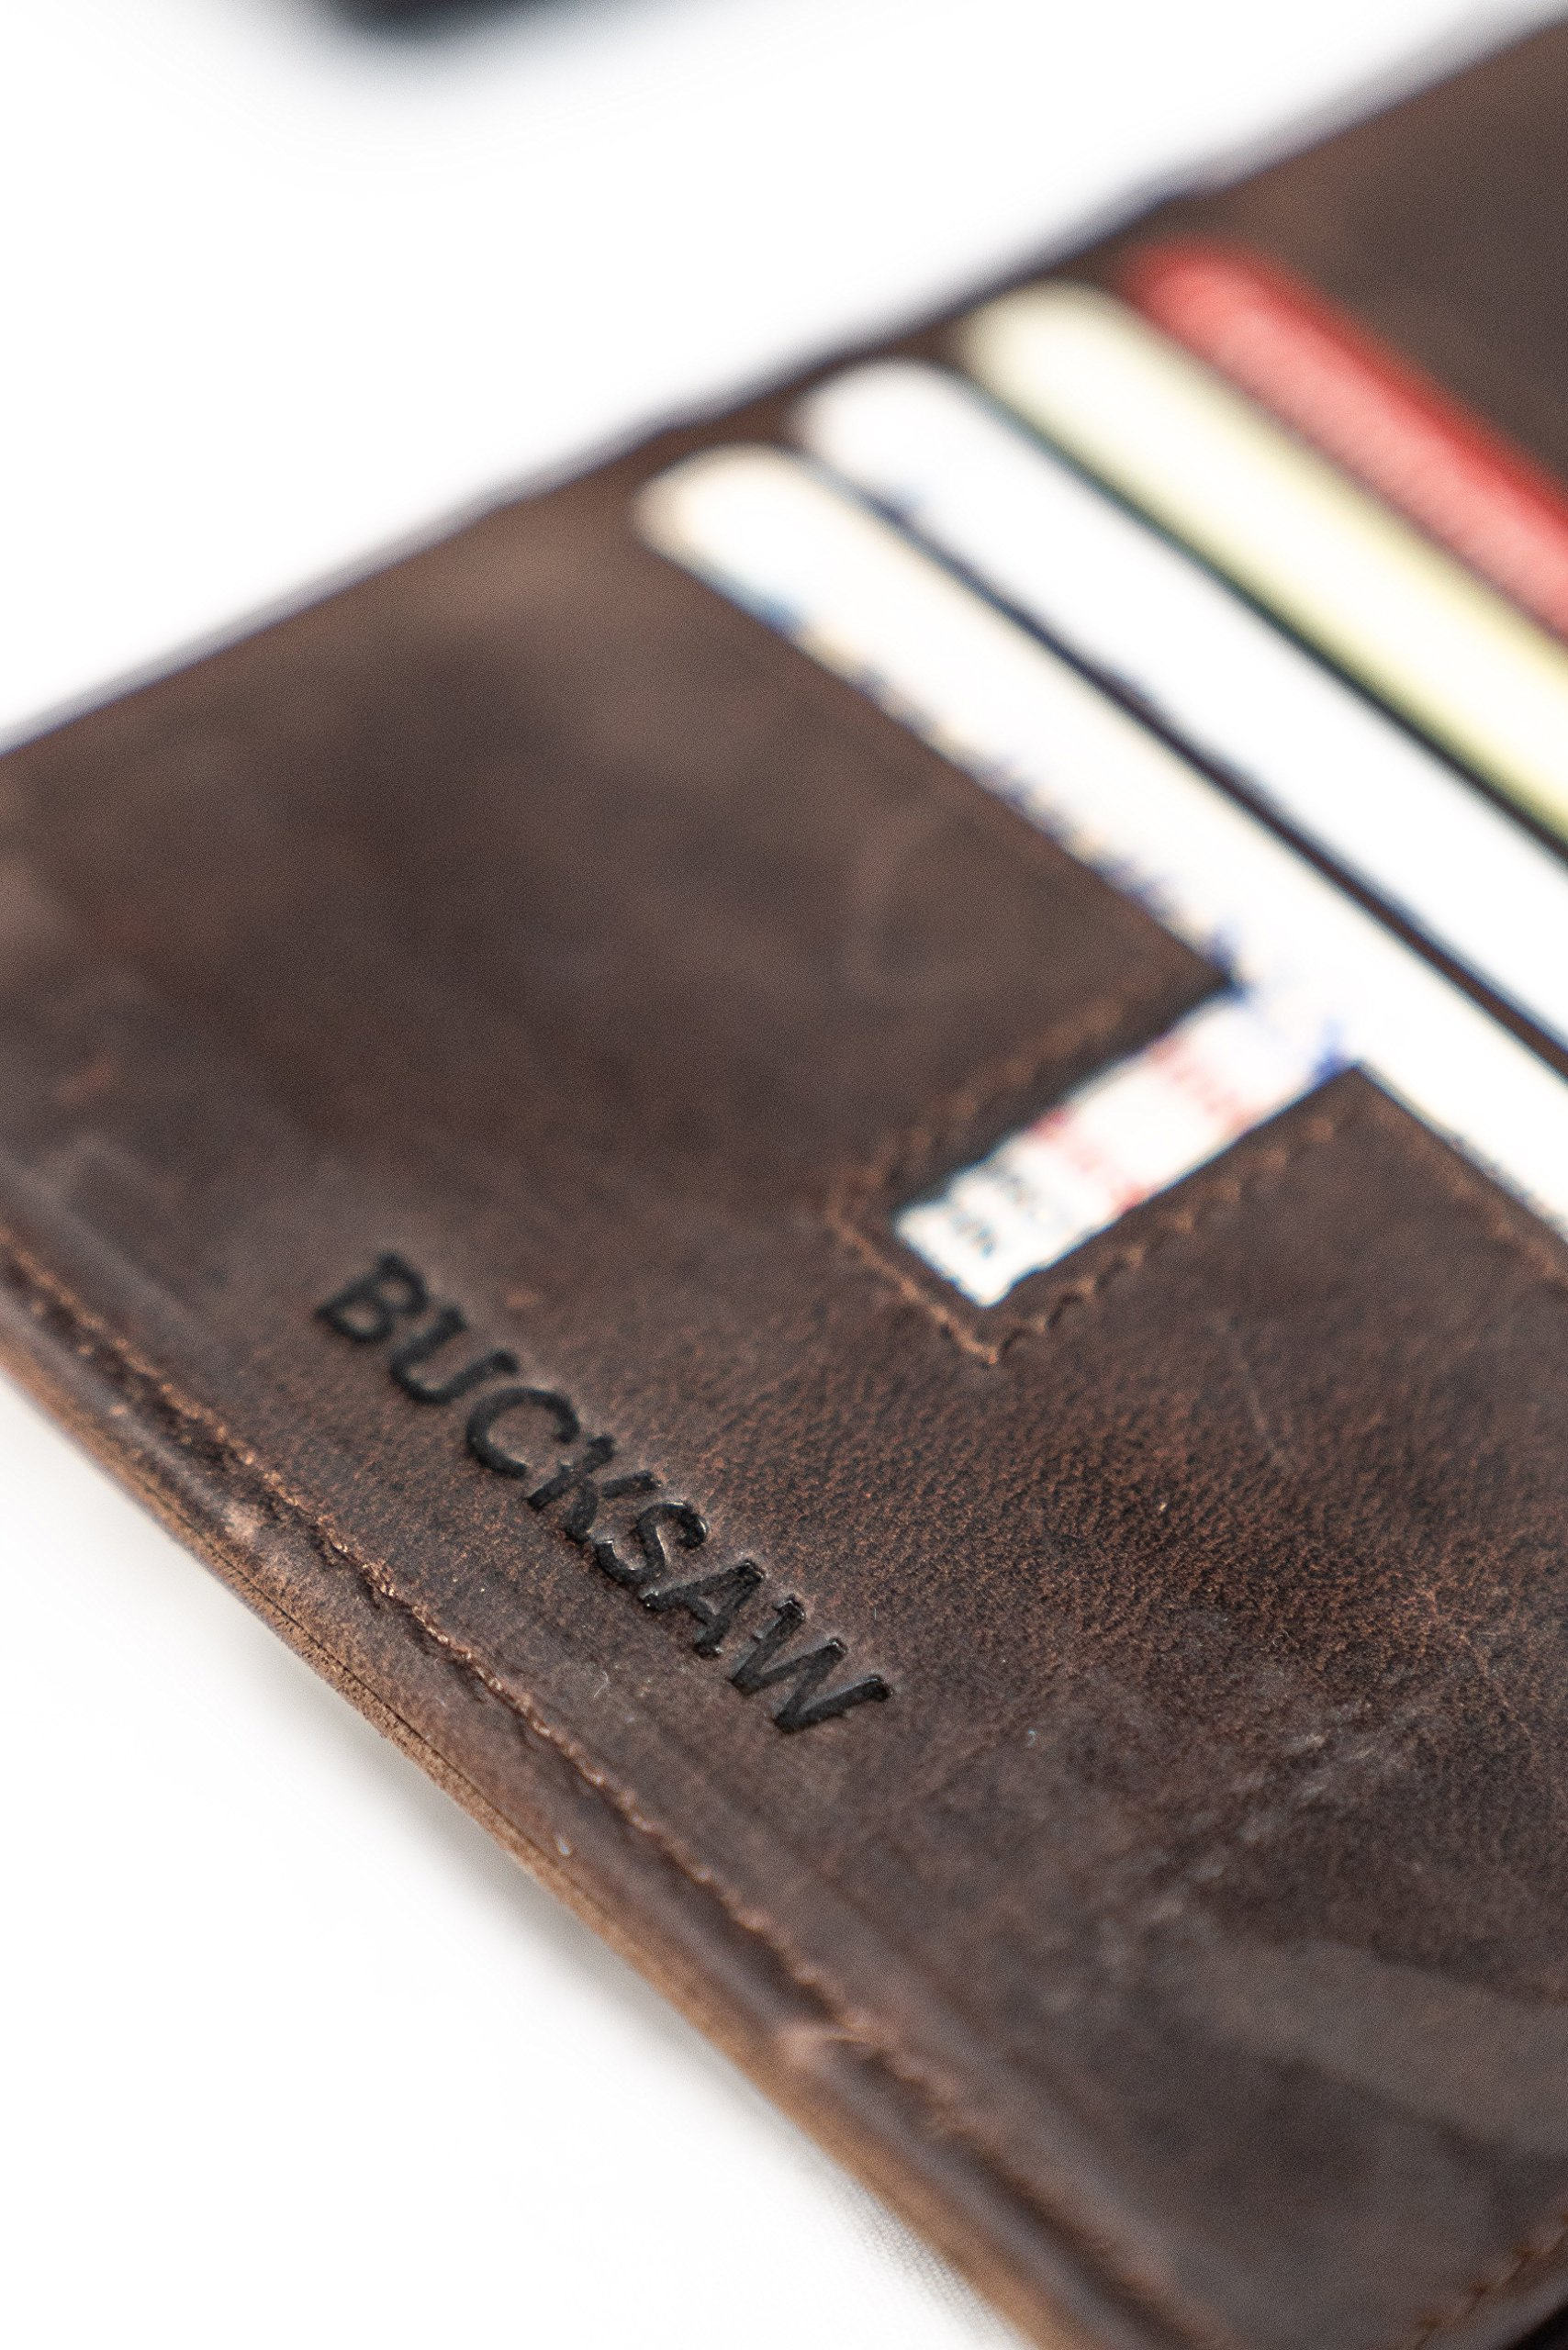 RFID Blocking Passport Wallet Holder Premium Full-Grain Leather by Case Elegance by CASE ELEGANCE